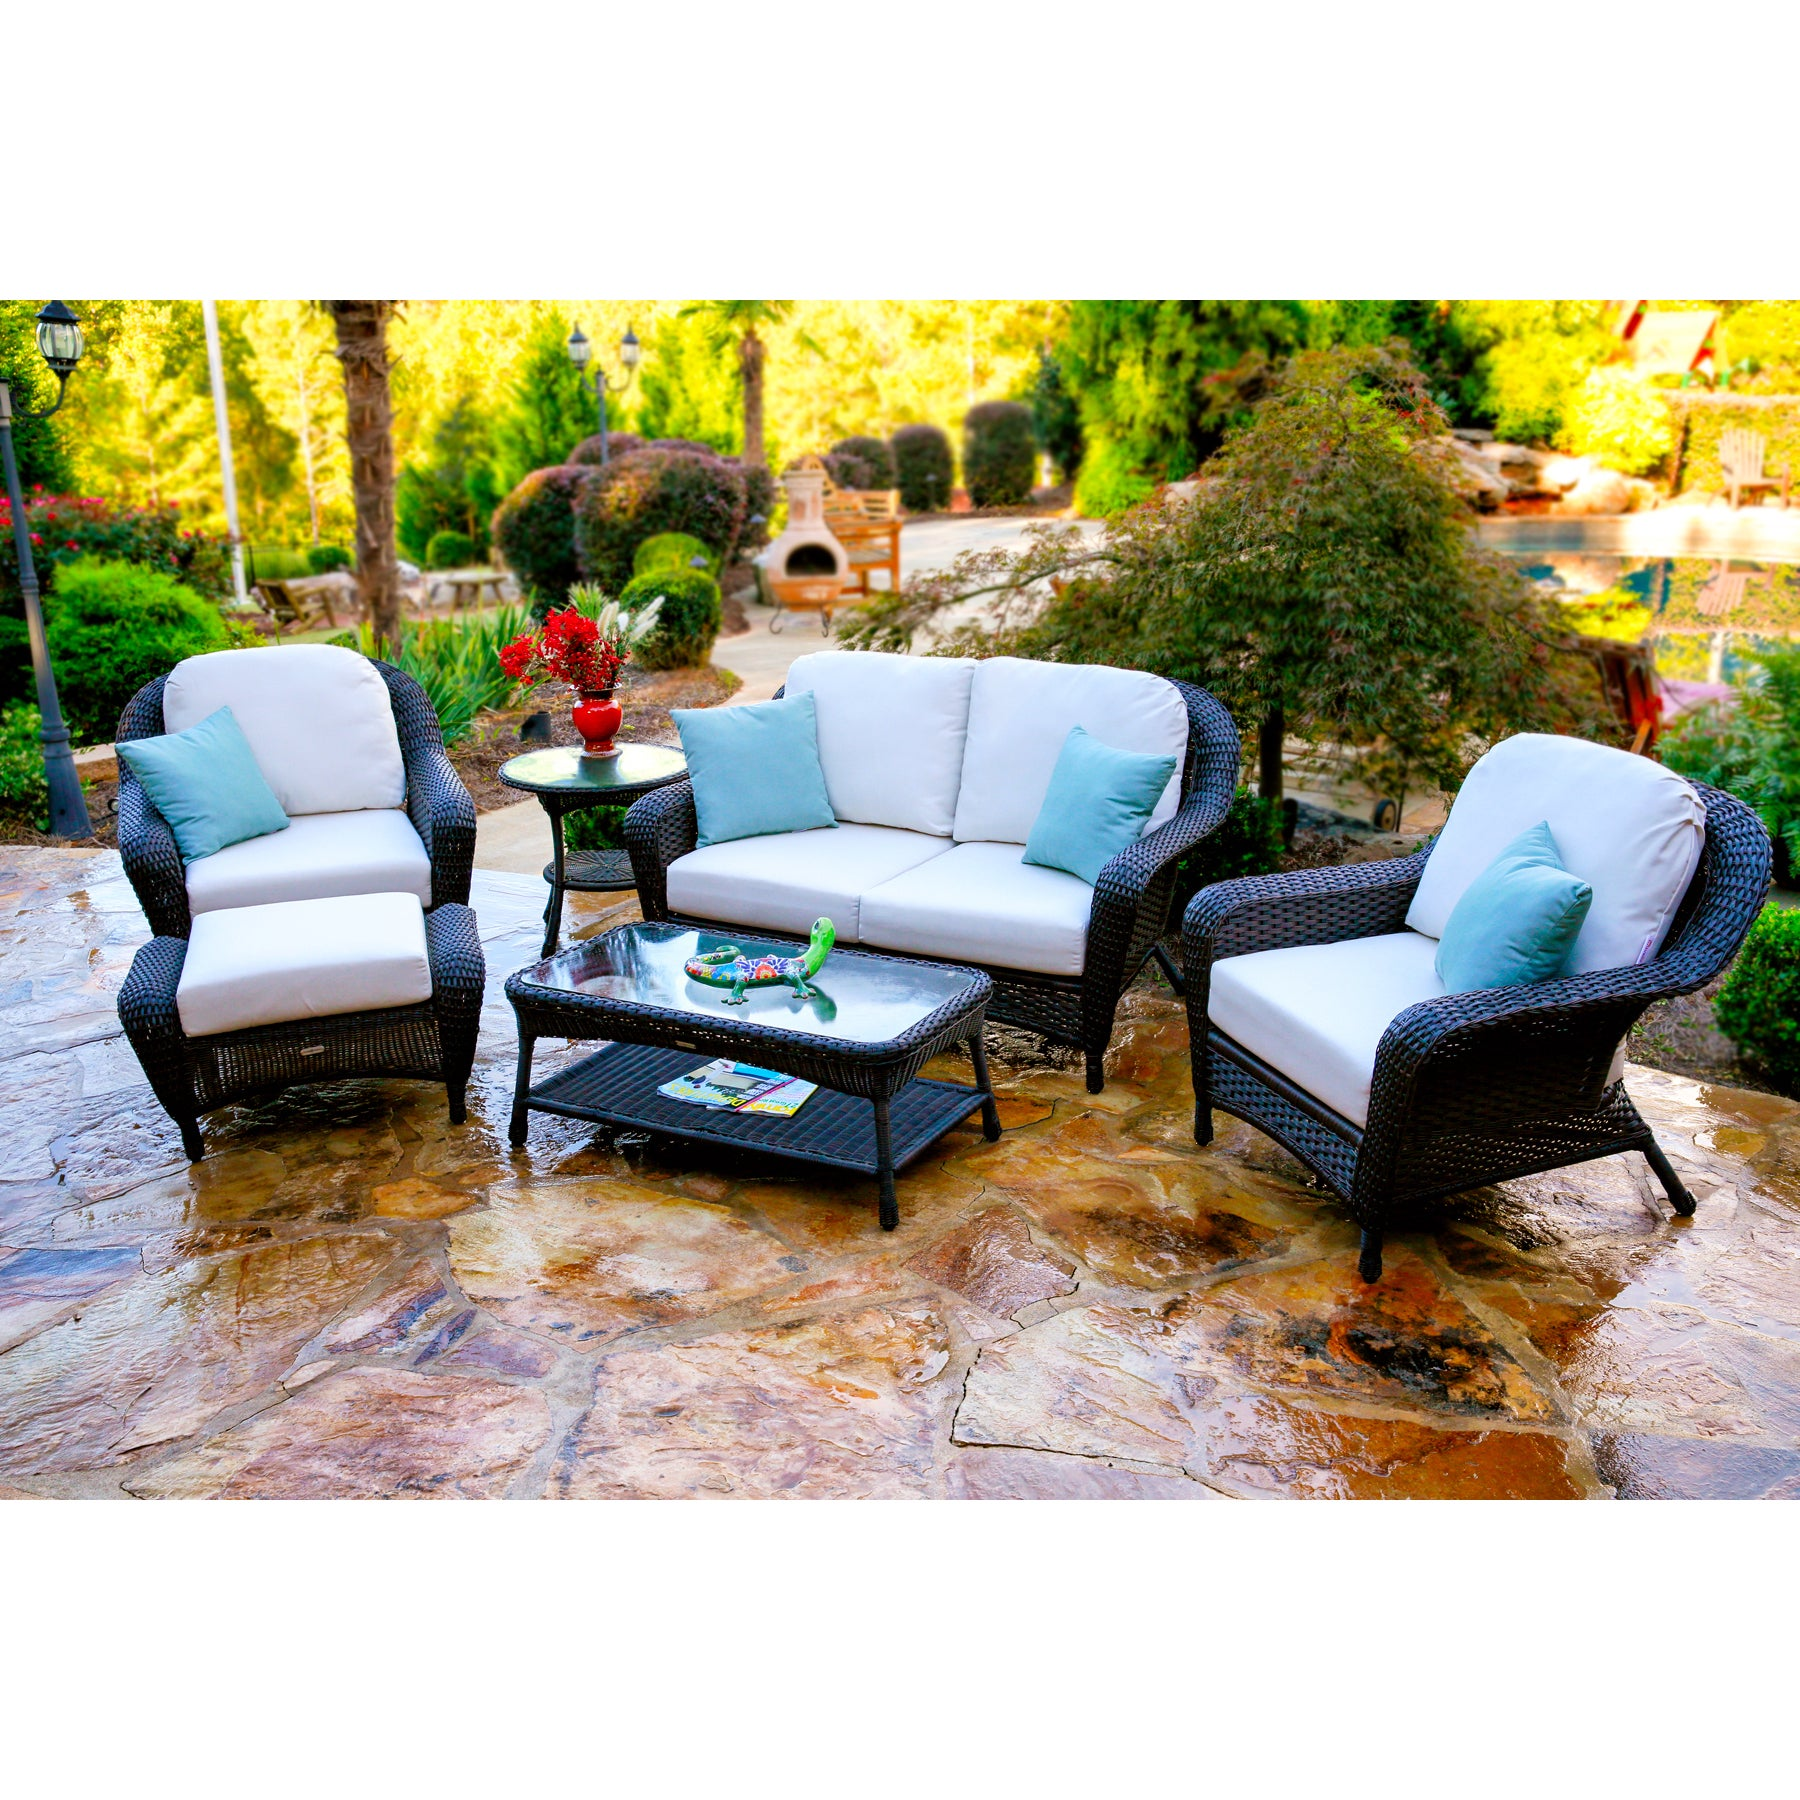 Lexington Dark Wicker Outdoor 6 Piece Patio Furniture Set With Cushions